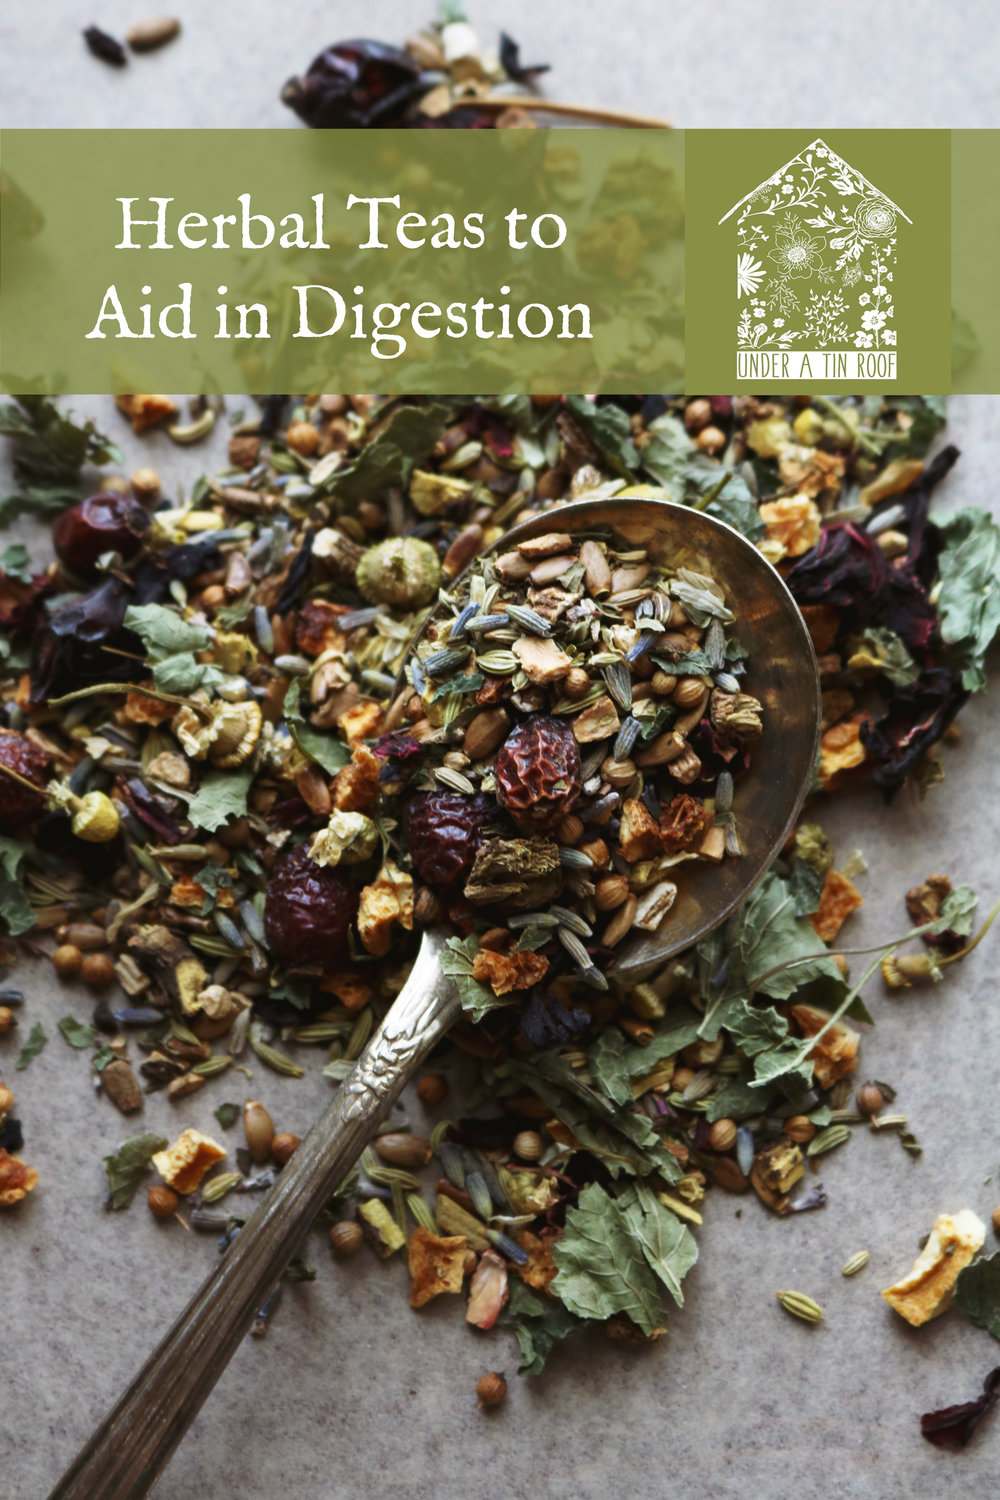 Teas to Aid in Digestion - Under A Tin Roof Blog